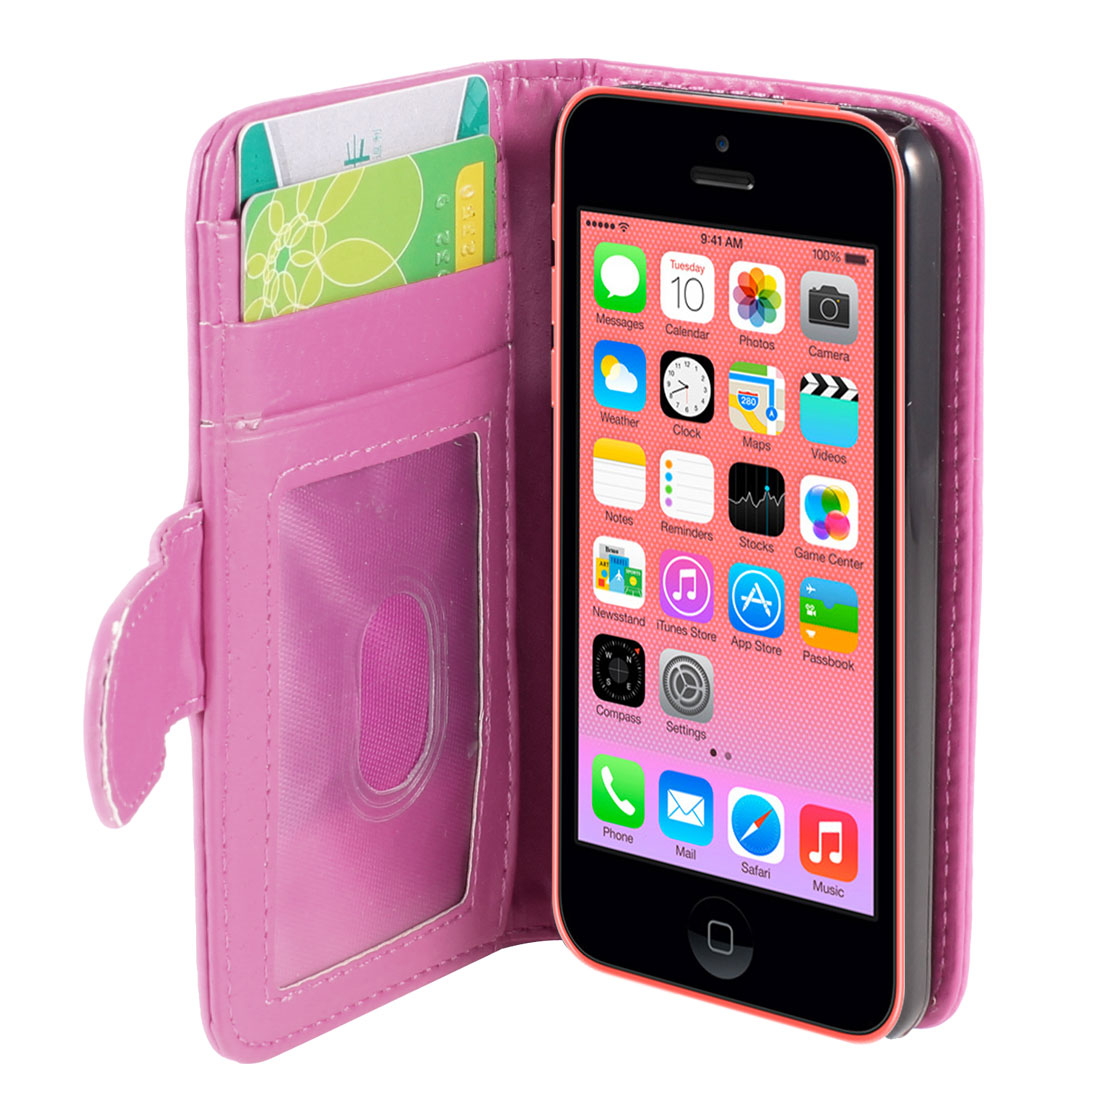 Unique Bargains Solid Fuchsia Faux Leather Stand Card Holder Flip Case Cover for iPhone 5C